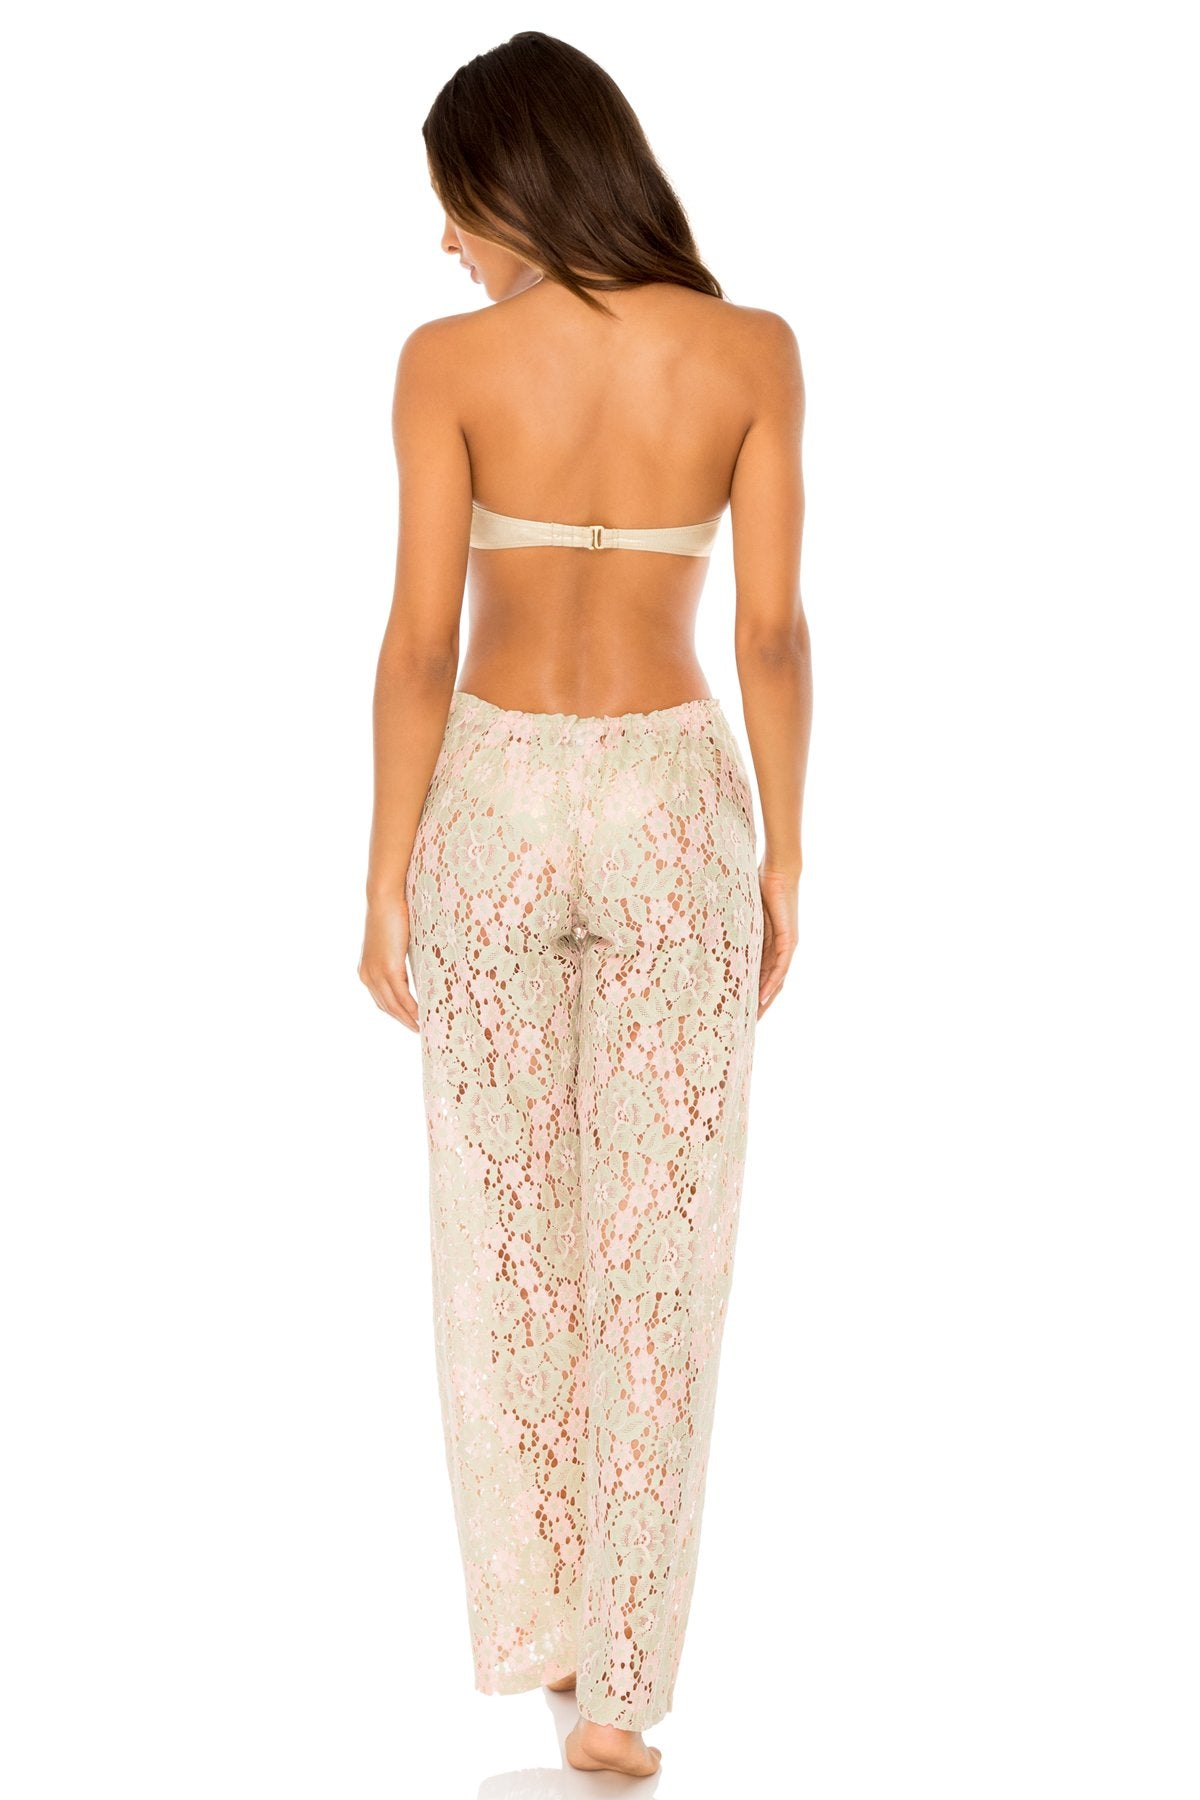 COSITA BUENA - Underwire Push Up Bandeau Top & Gitana Beach Pant • Gold Rush